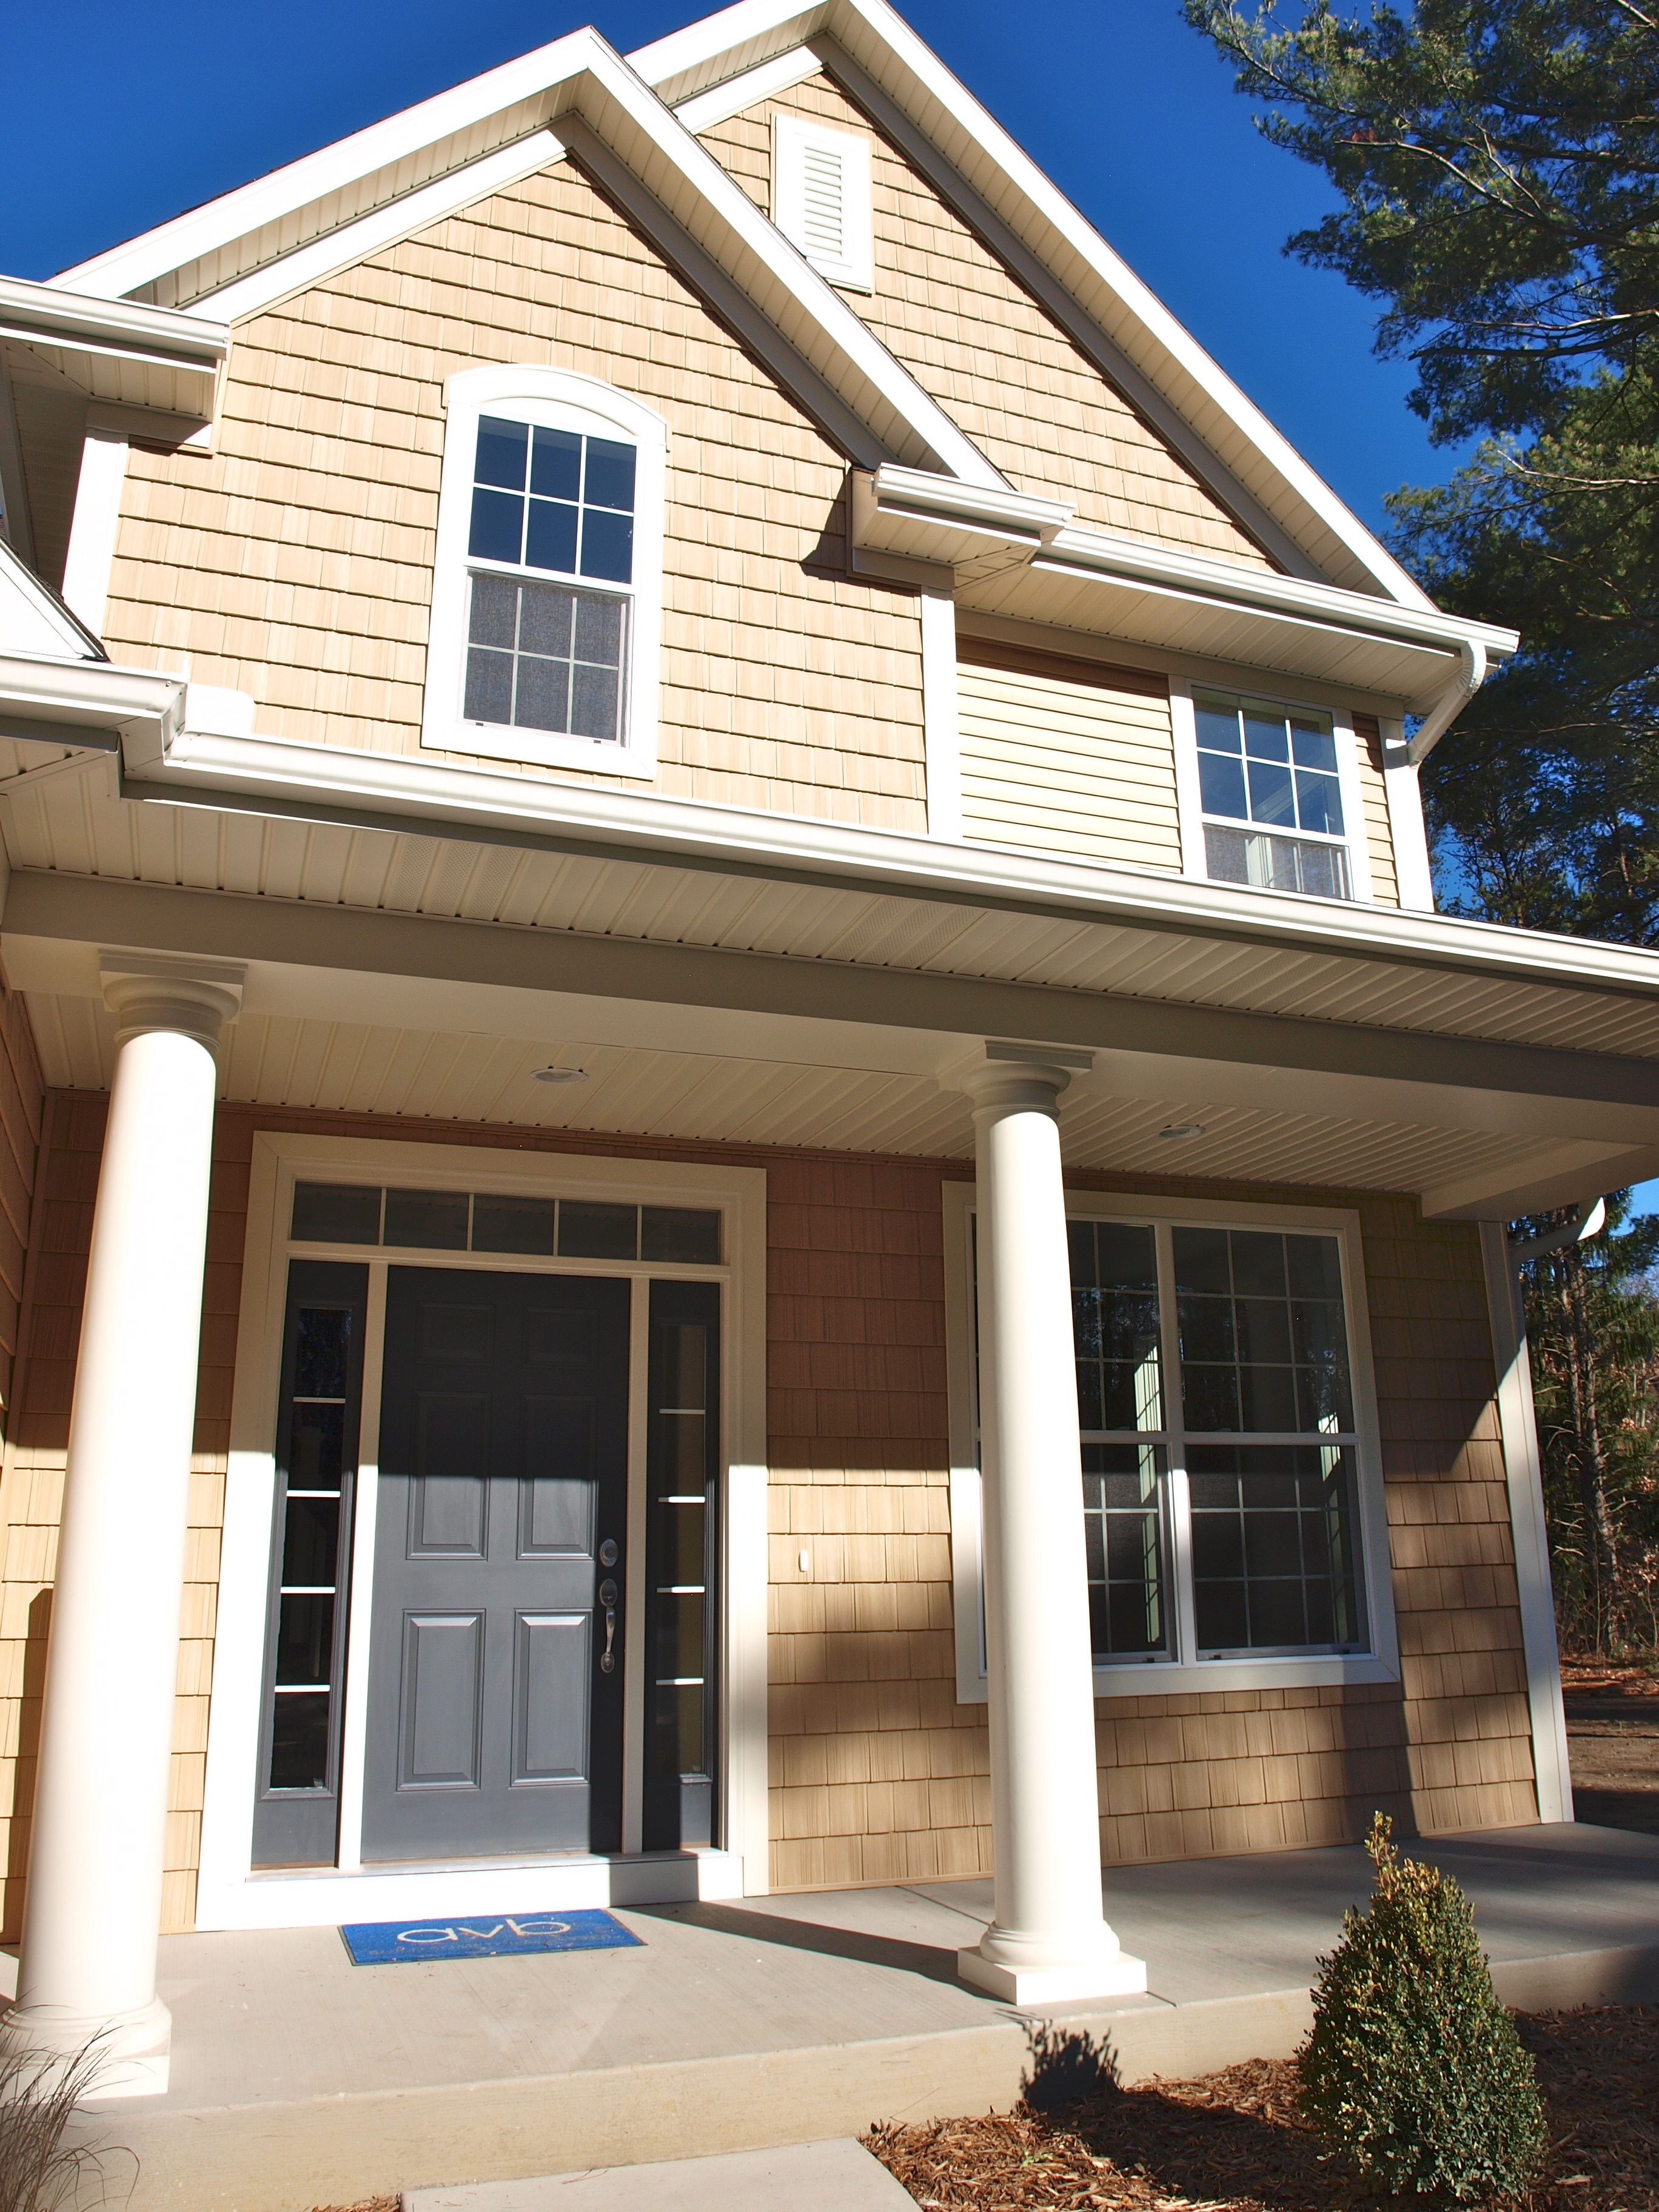 Vinyl shake siding, 8' entrance door with sidelights and